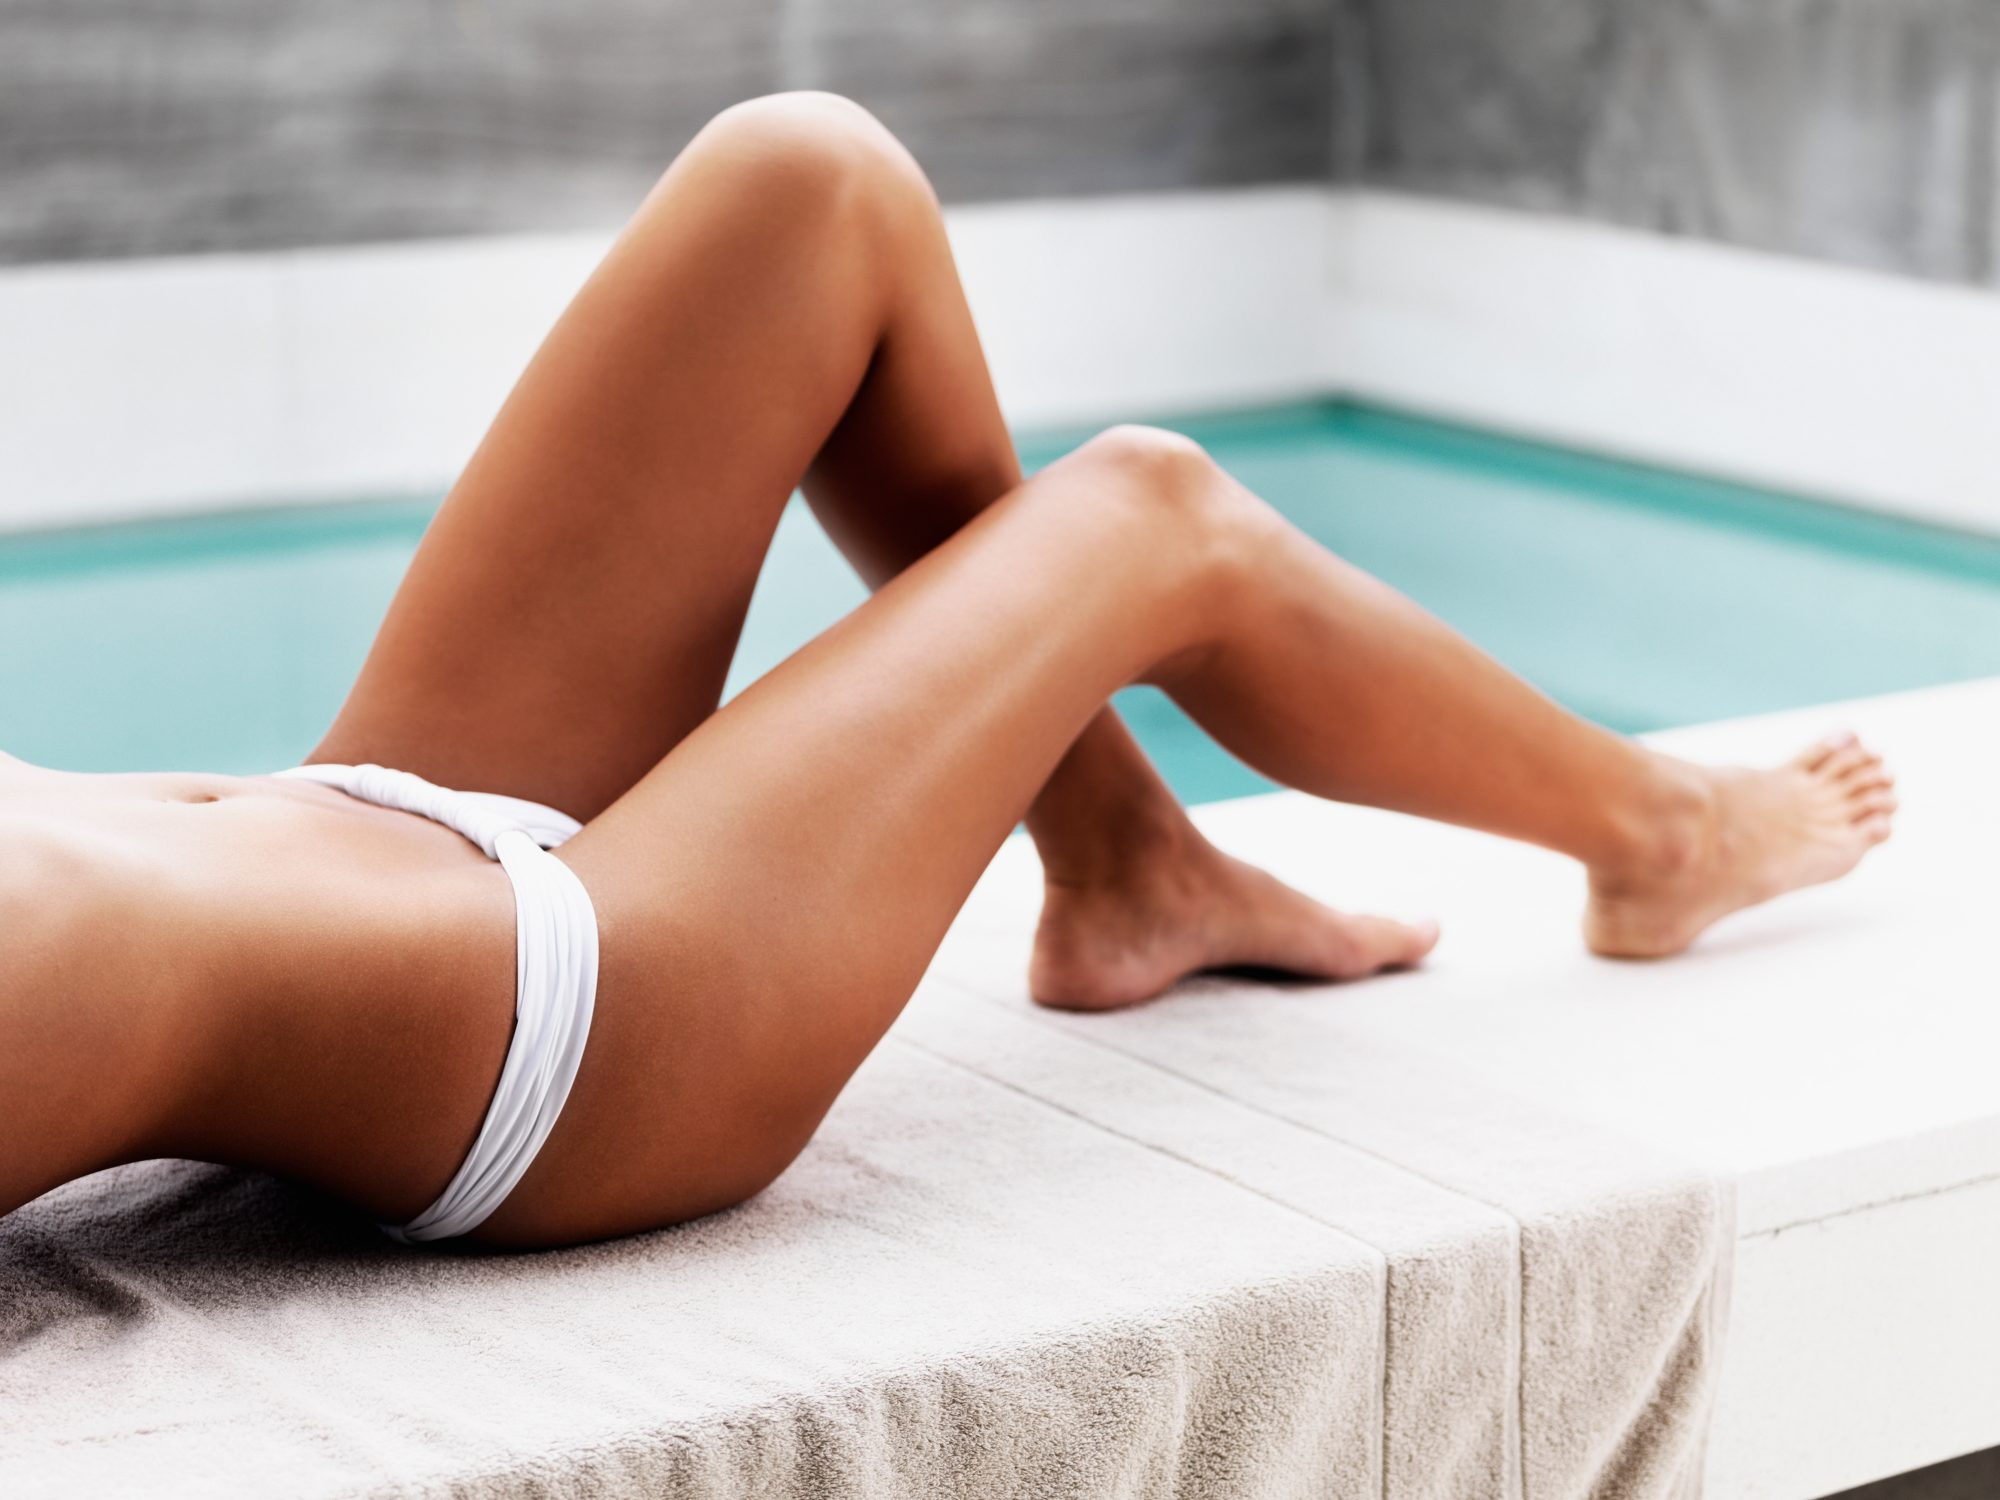 Your Foolproof Guide to RemovingSelf-Tanner Stains